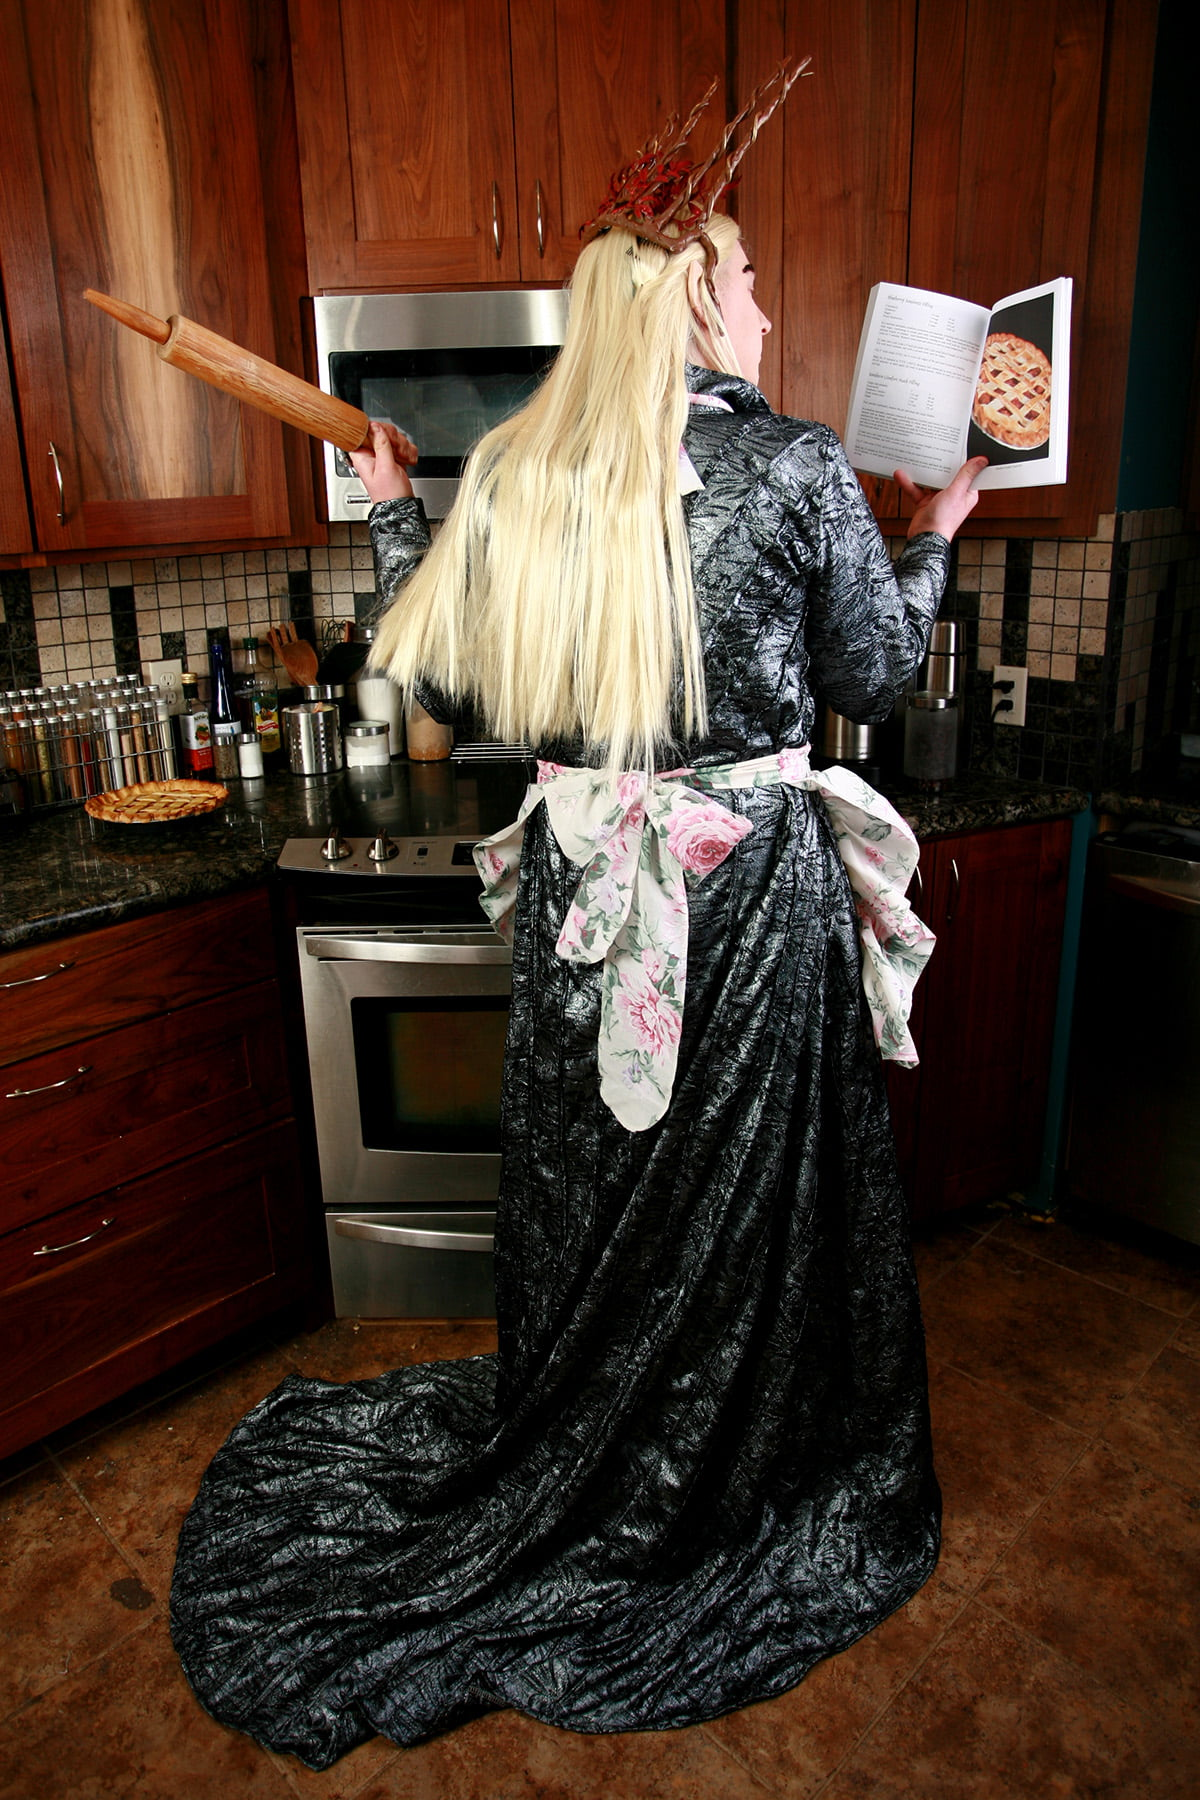 A man dressed as Thrandruil, with his back to the camera.  He is wearing a frilly apron over his robe, and is reading a cookbook.  In one hand, he holds a rolling pin.